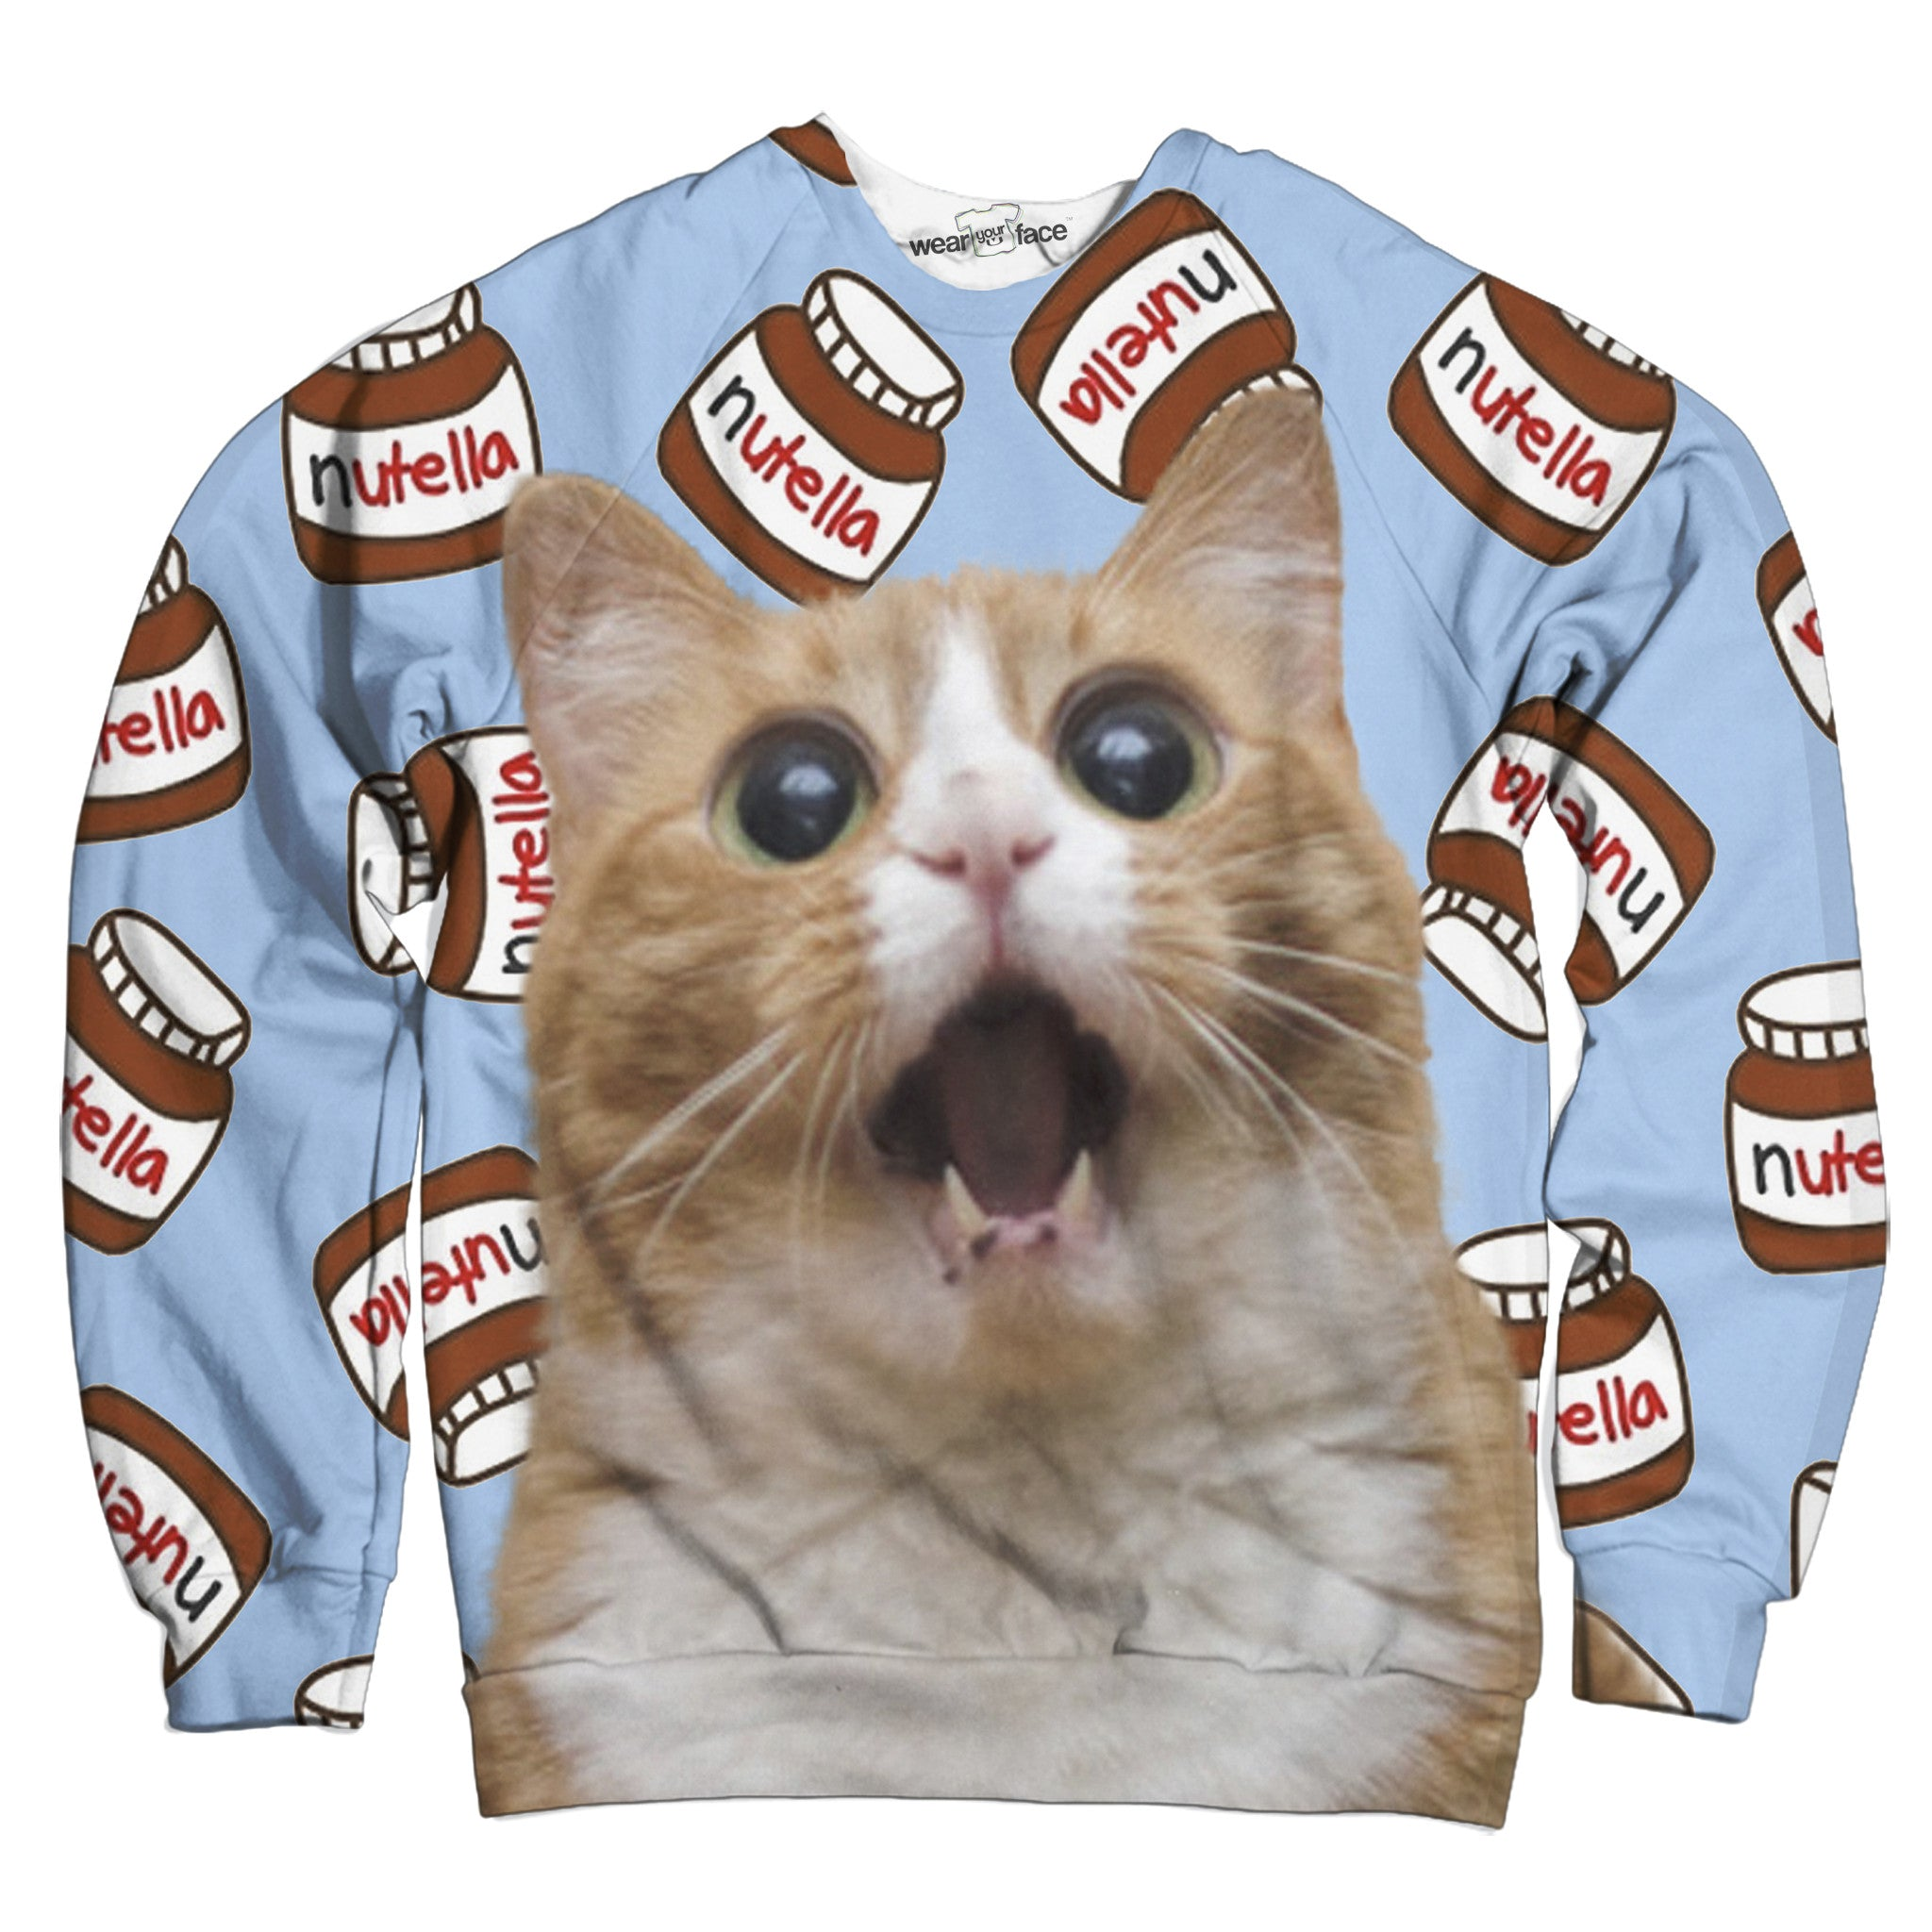 Nutella Excitement Sweatshirt